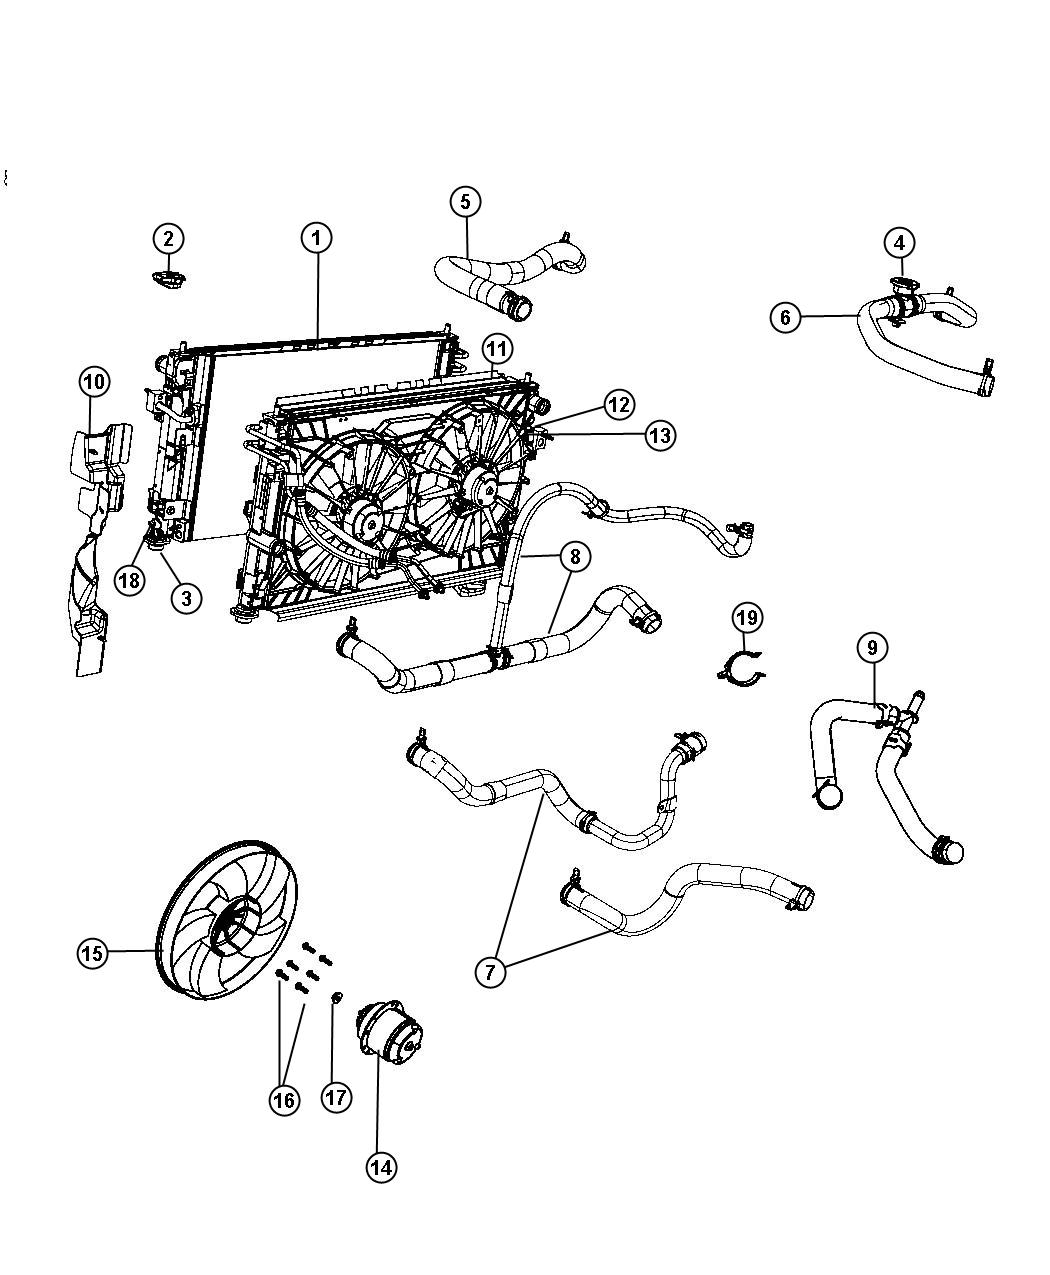 2008 Dodge Avenger Radiator and Related Parts.